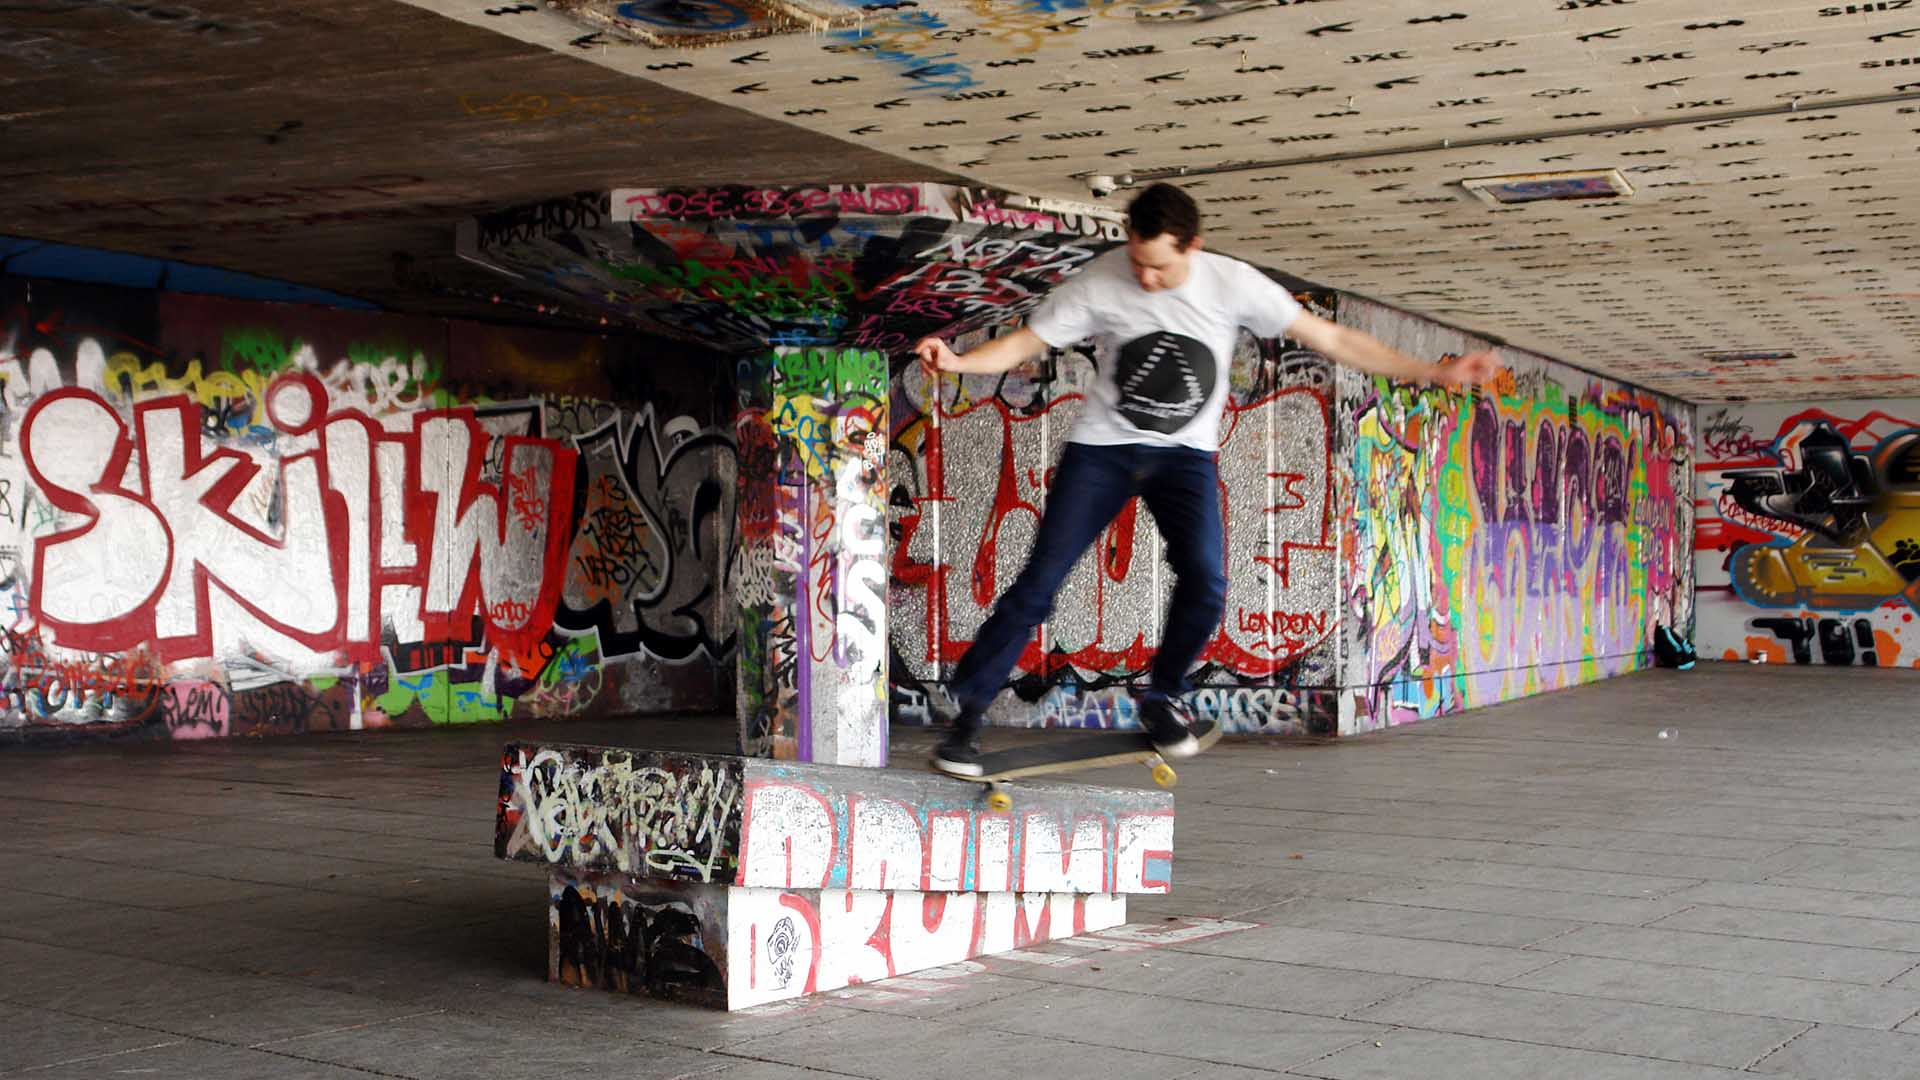 Undercroft skatepark is widely considered the spiritual home of British skating.